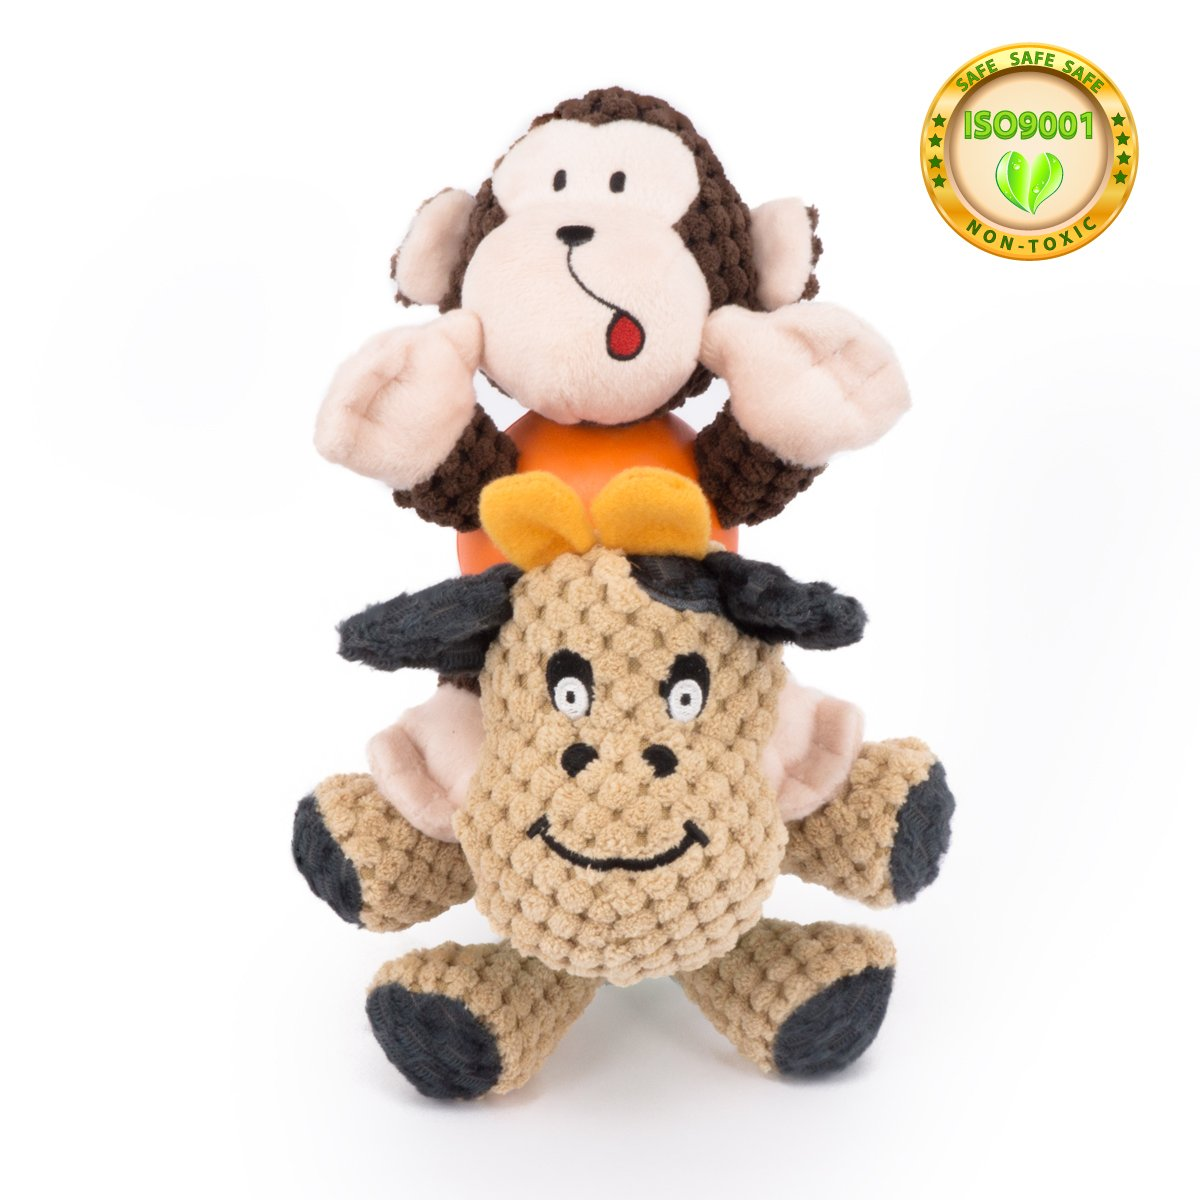 dog squeaky plush chew toyscow monkey shape pet toy with rubber ball body toys for small dogs and catssafety durable materialeasy to cleanfashion cute